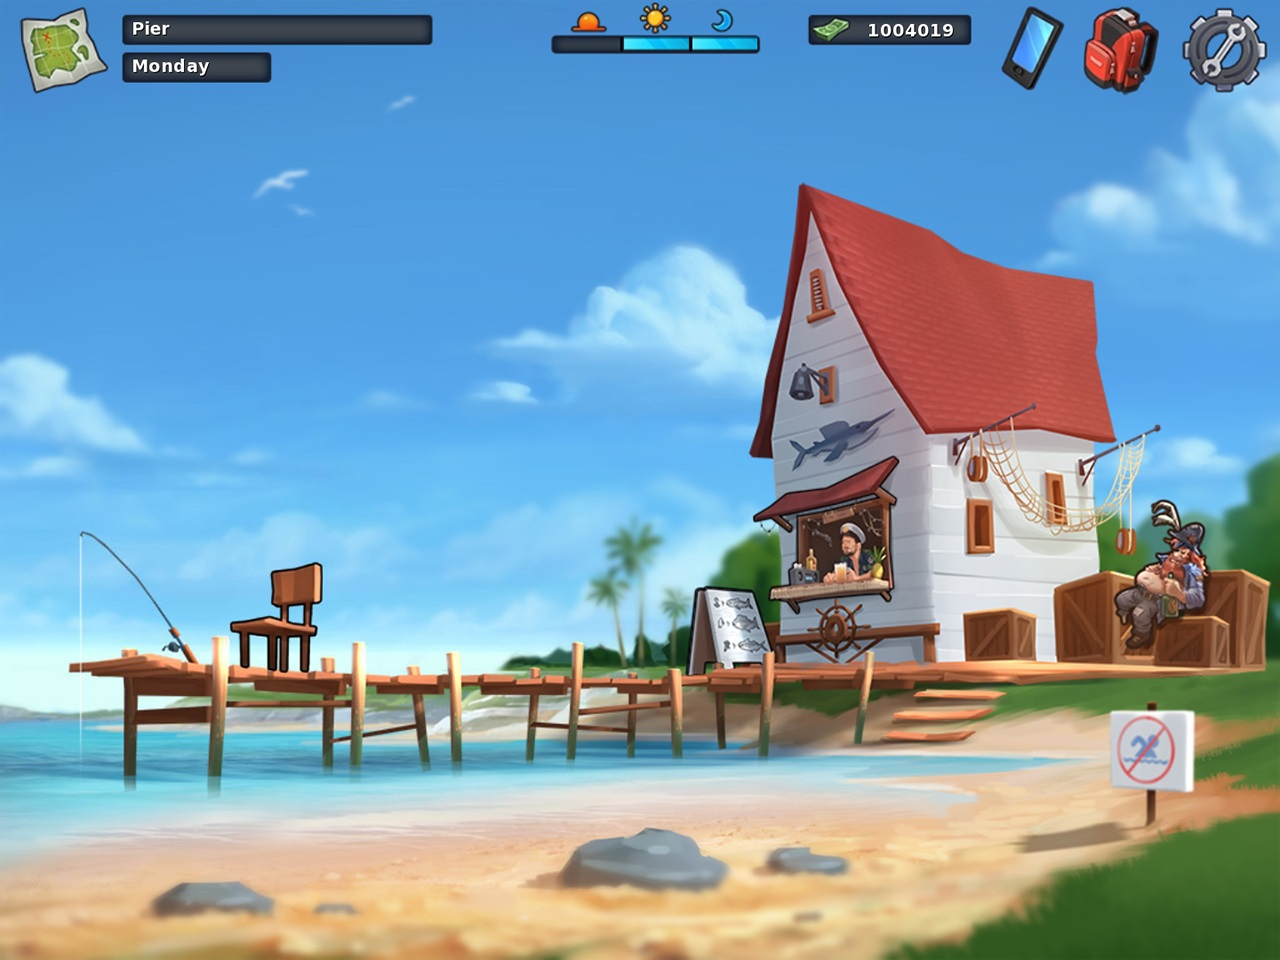 Summertime Saga MOD APK (Unlock All, Unlimited Money) 2